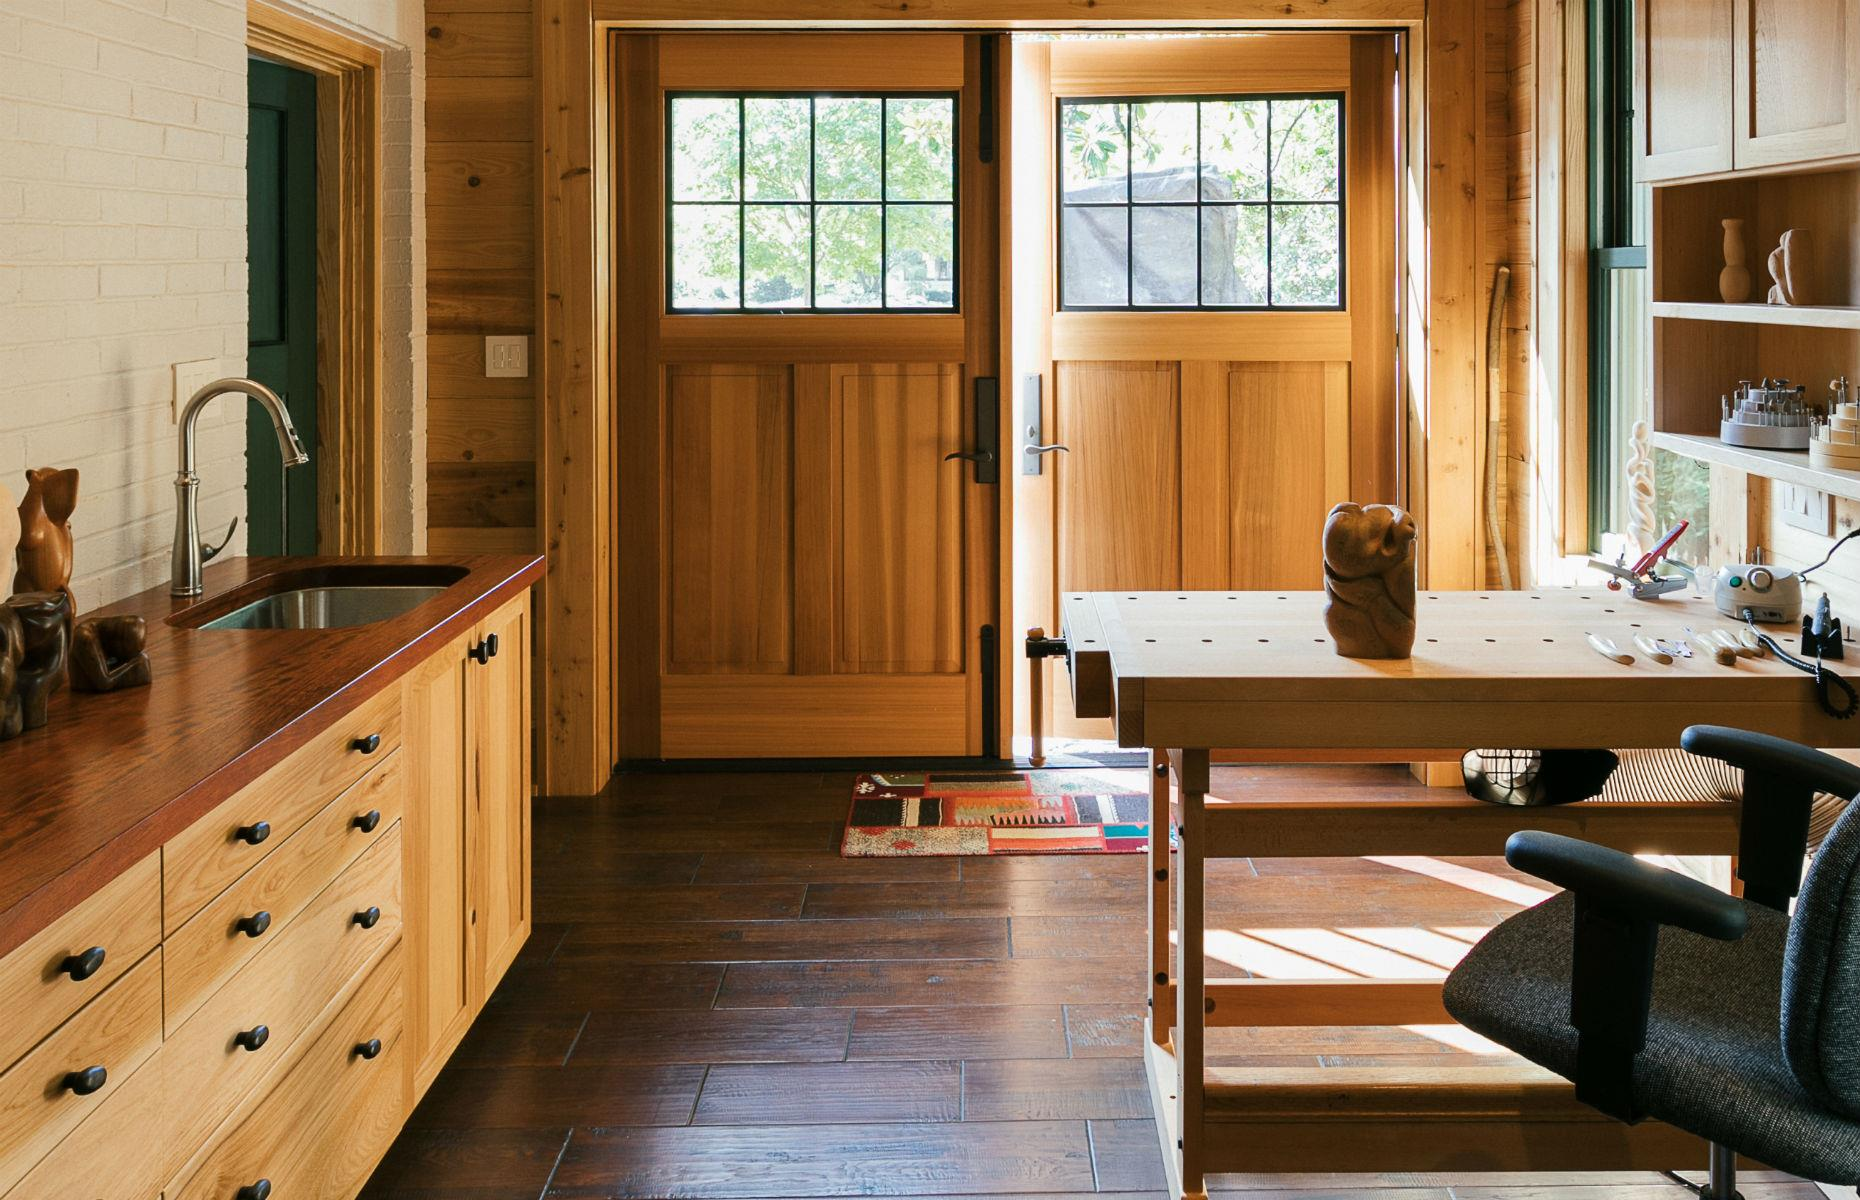 The garage of this 85-year-old home was transformed from a sad storage space into a sleek studio. Image:Handcrafted Homes, Inc.